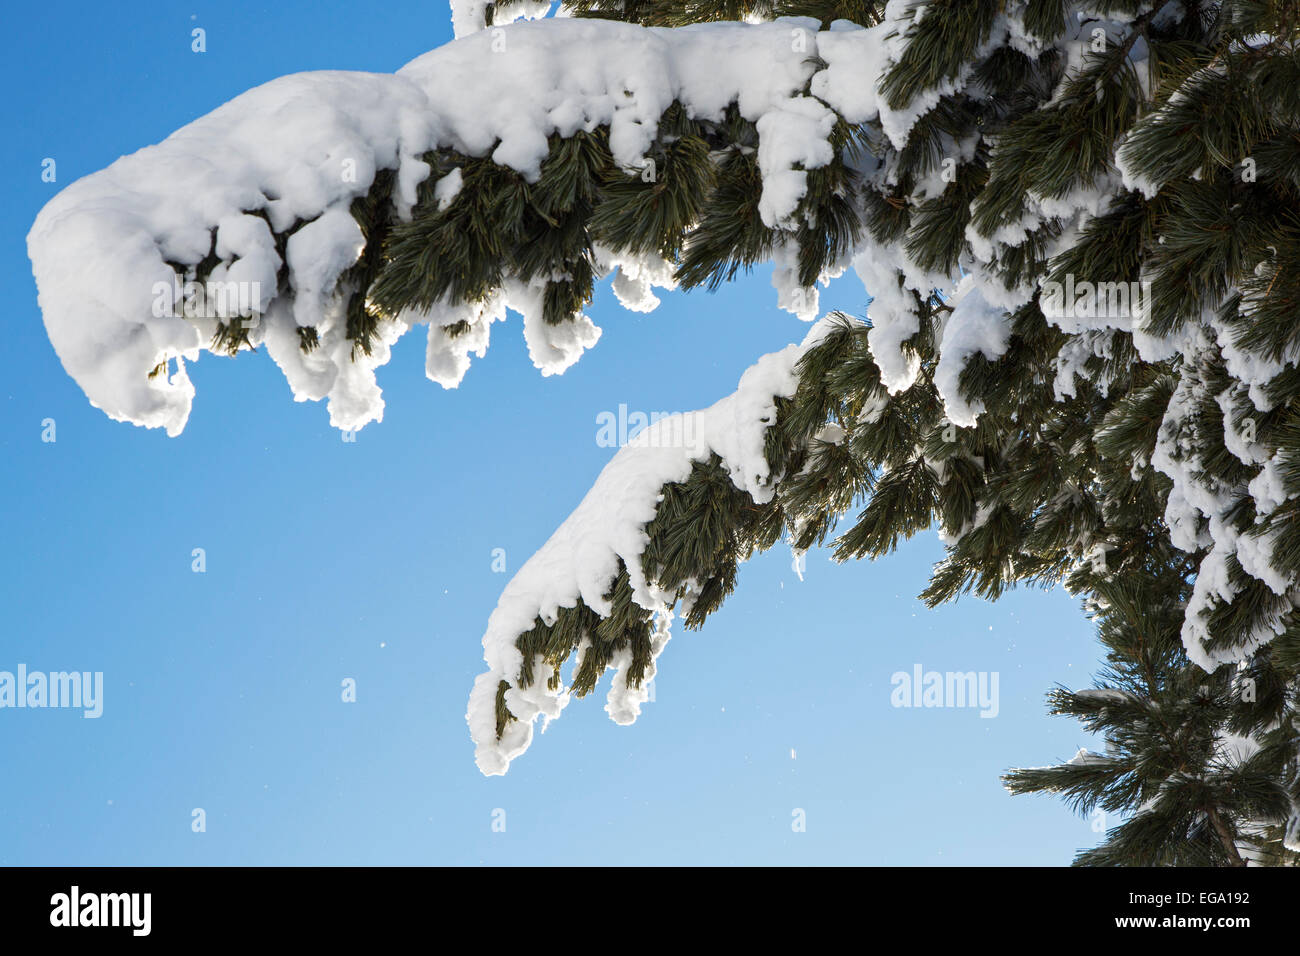 Close up of spruce tree branches laden with snow against clear blue sky - Stock Image